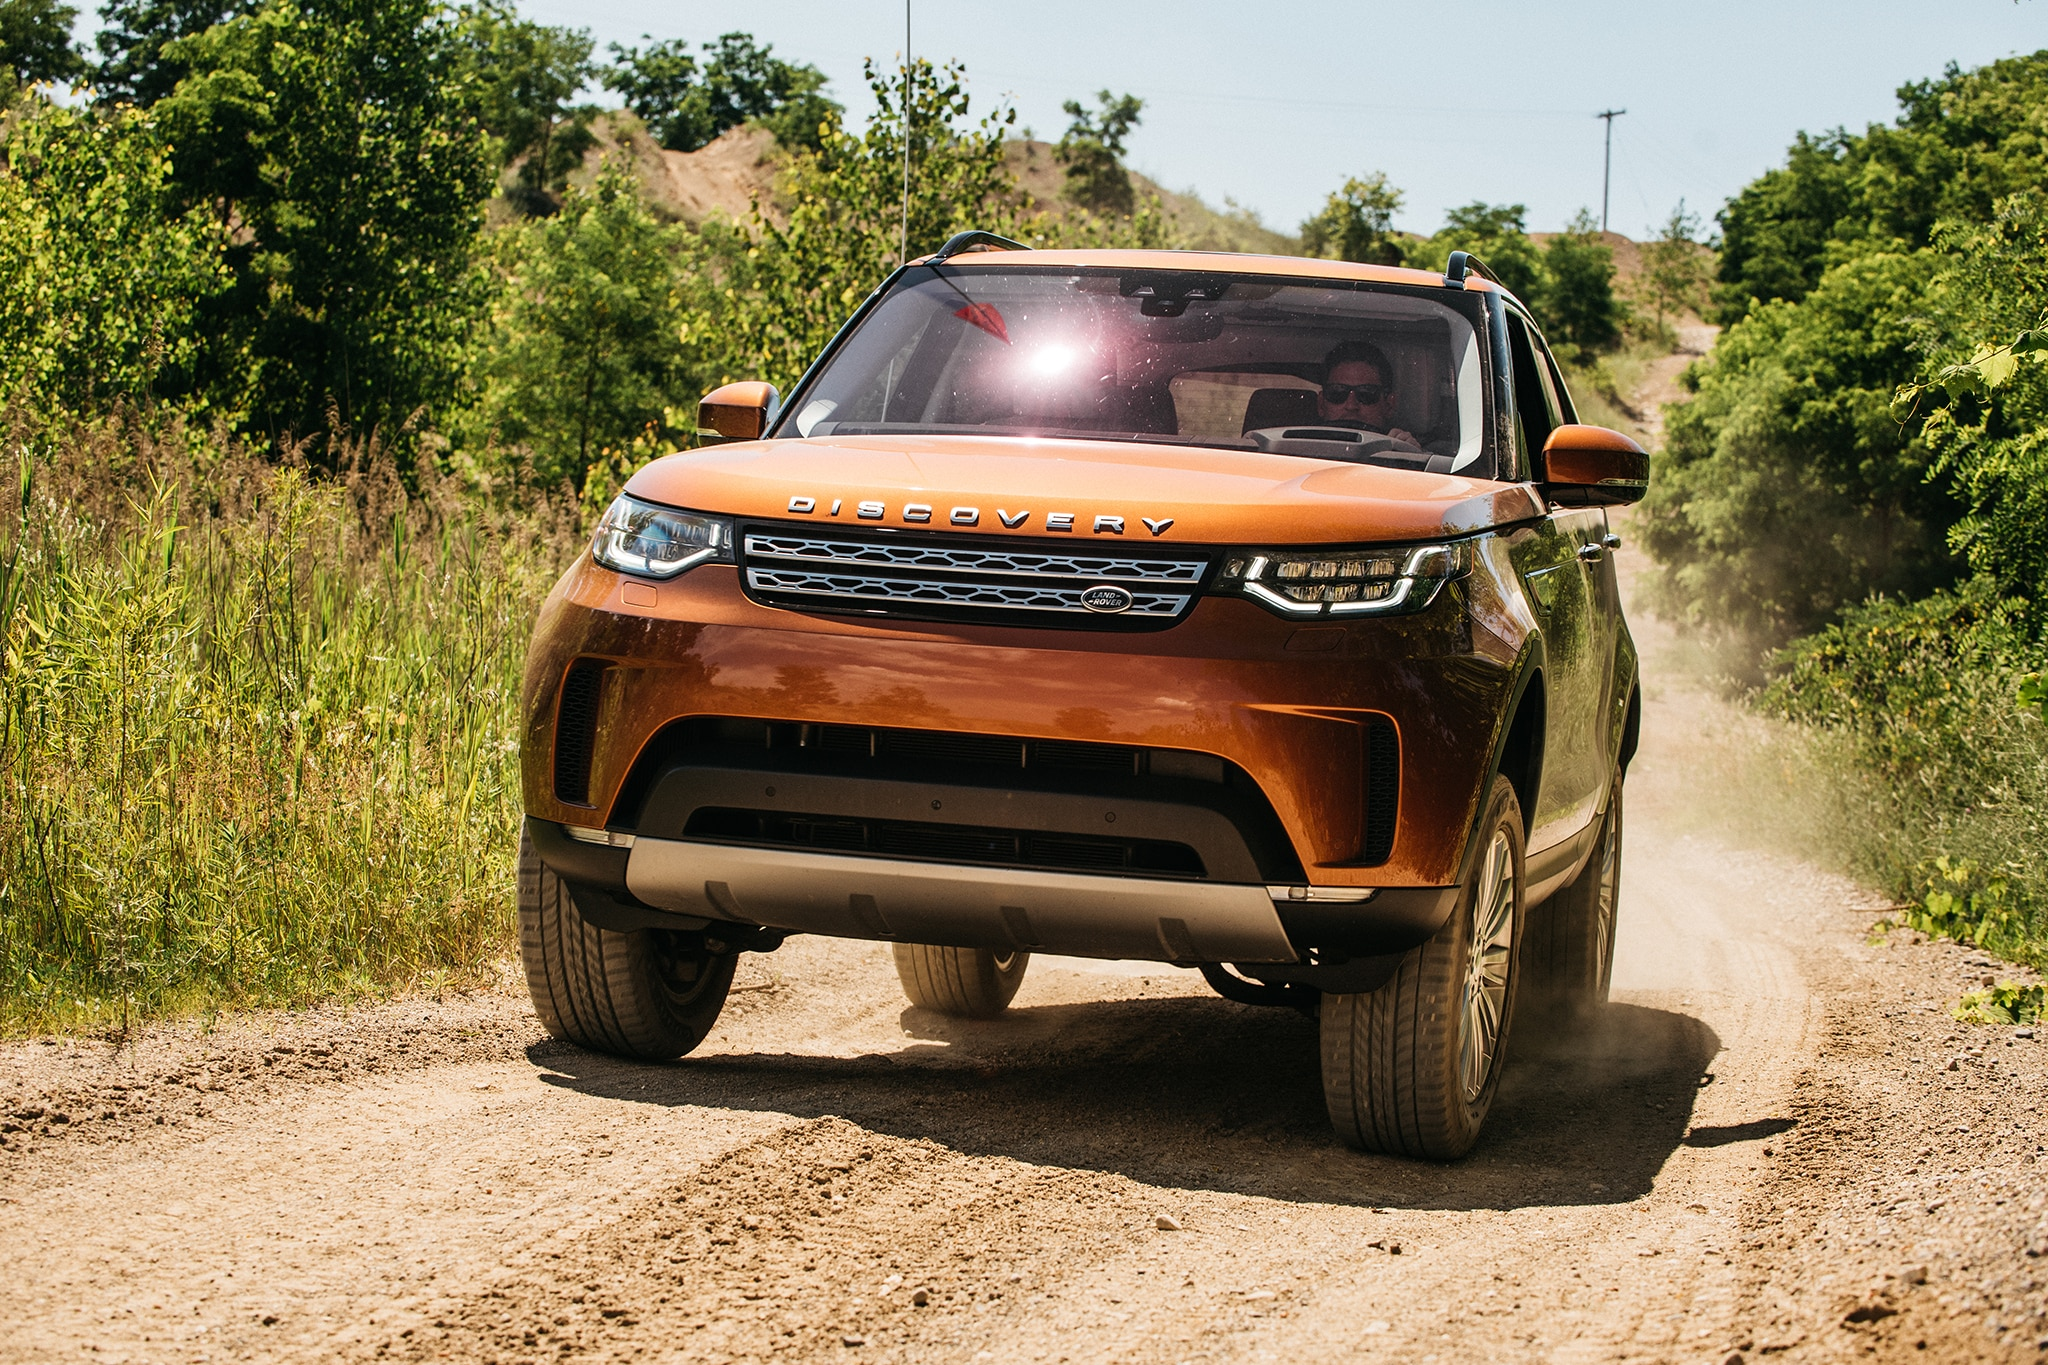 2017 Land Rover Discovery Td6 HSE Front View In Motion 10